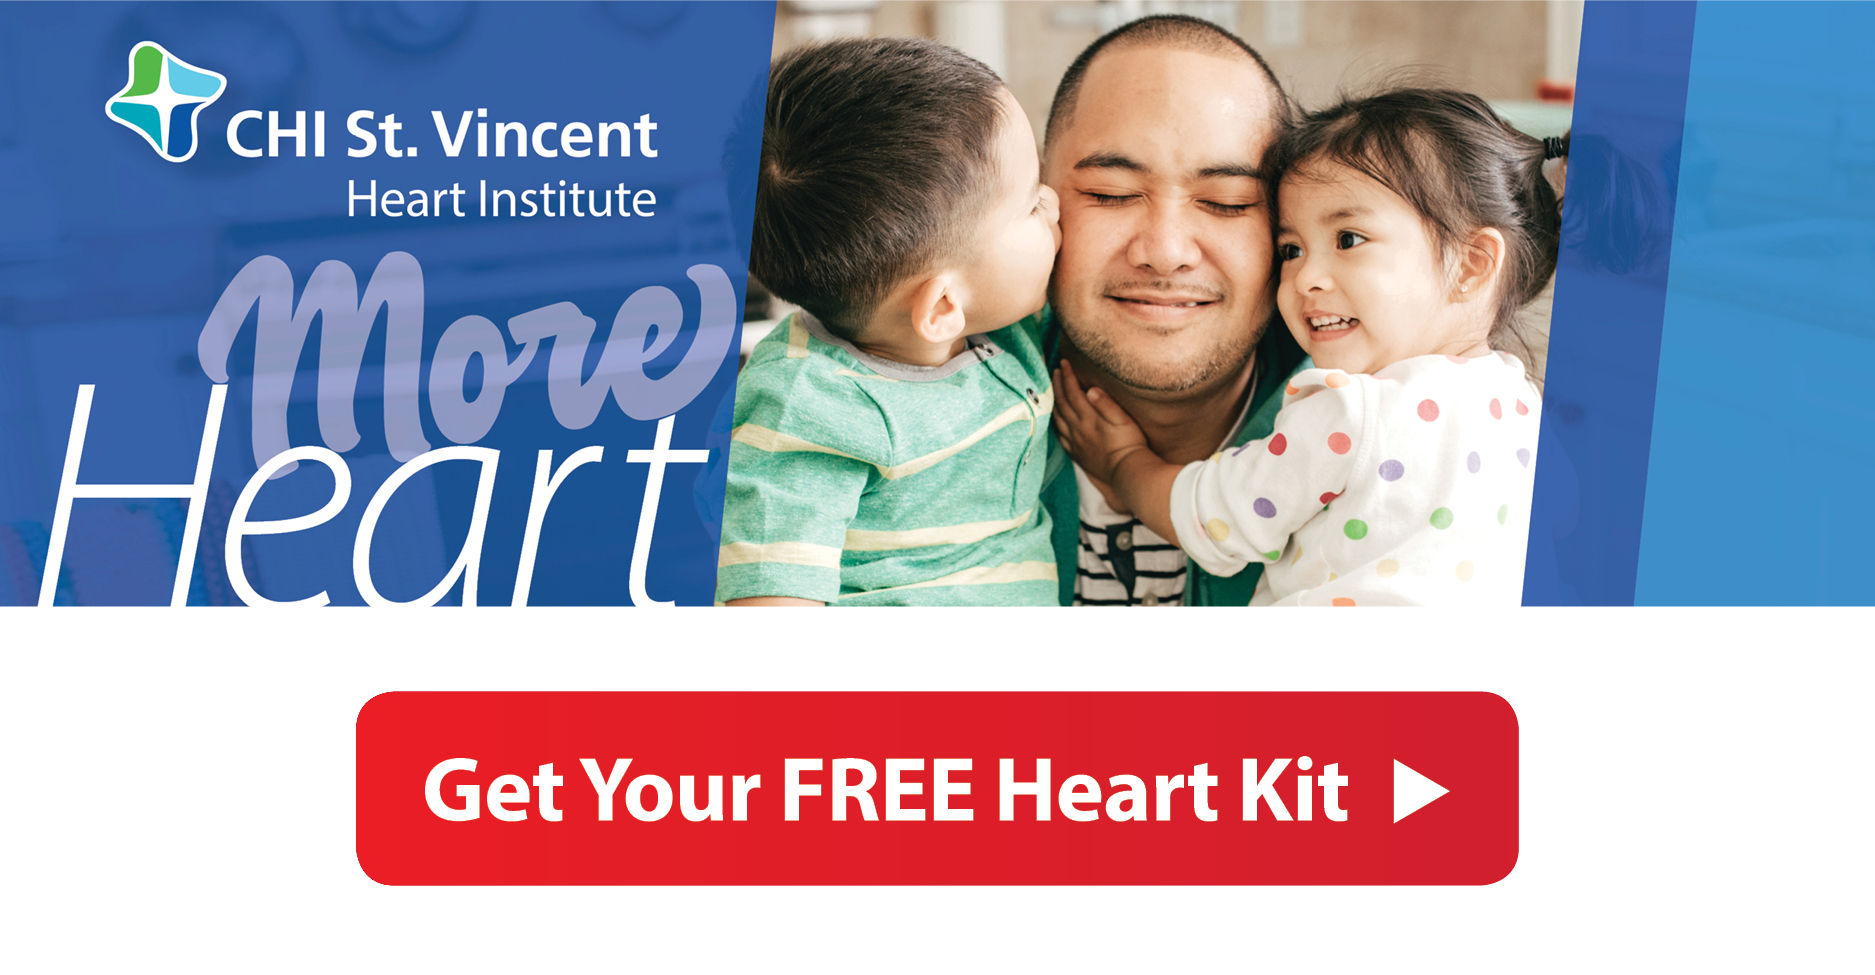 Heart Care featuring dad and kids